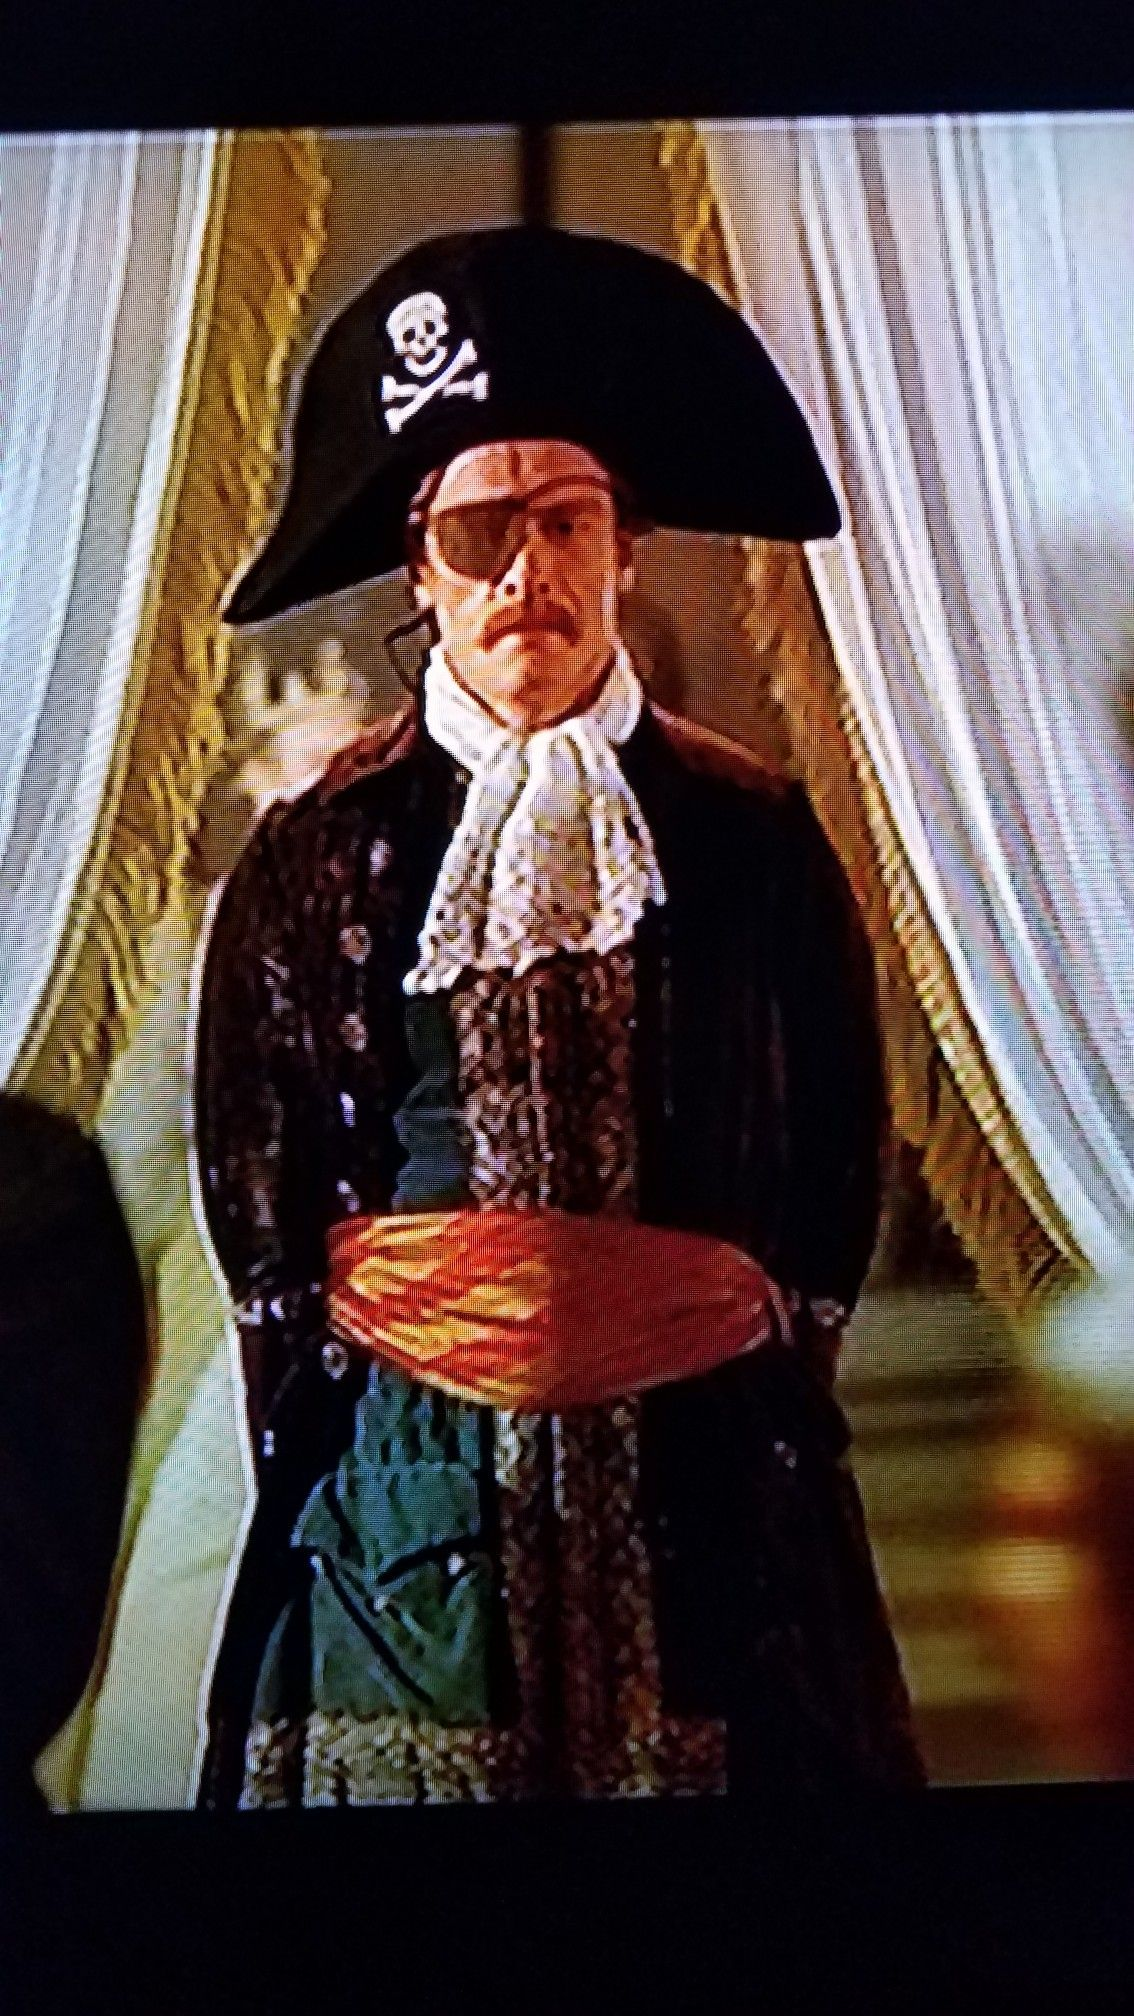 Toby Stephens Practices For His Role As Cptn Flint Costume Drama Toby Stephens Pandey